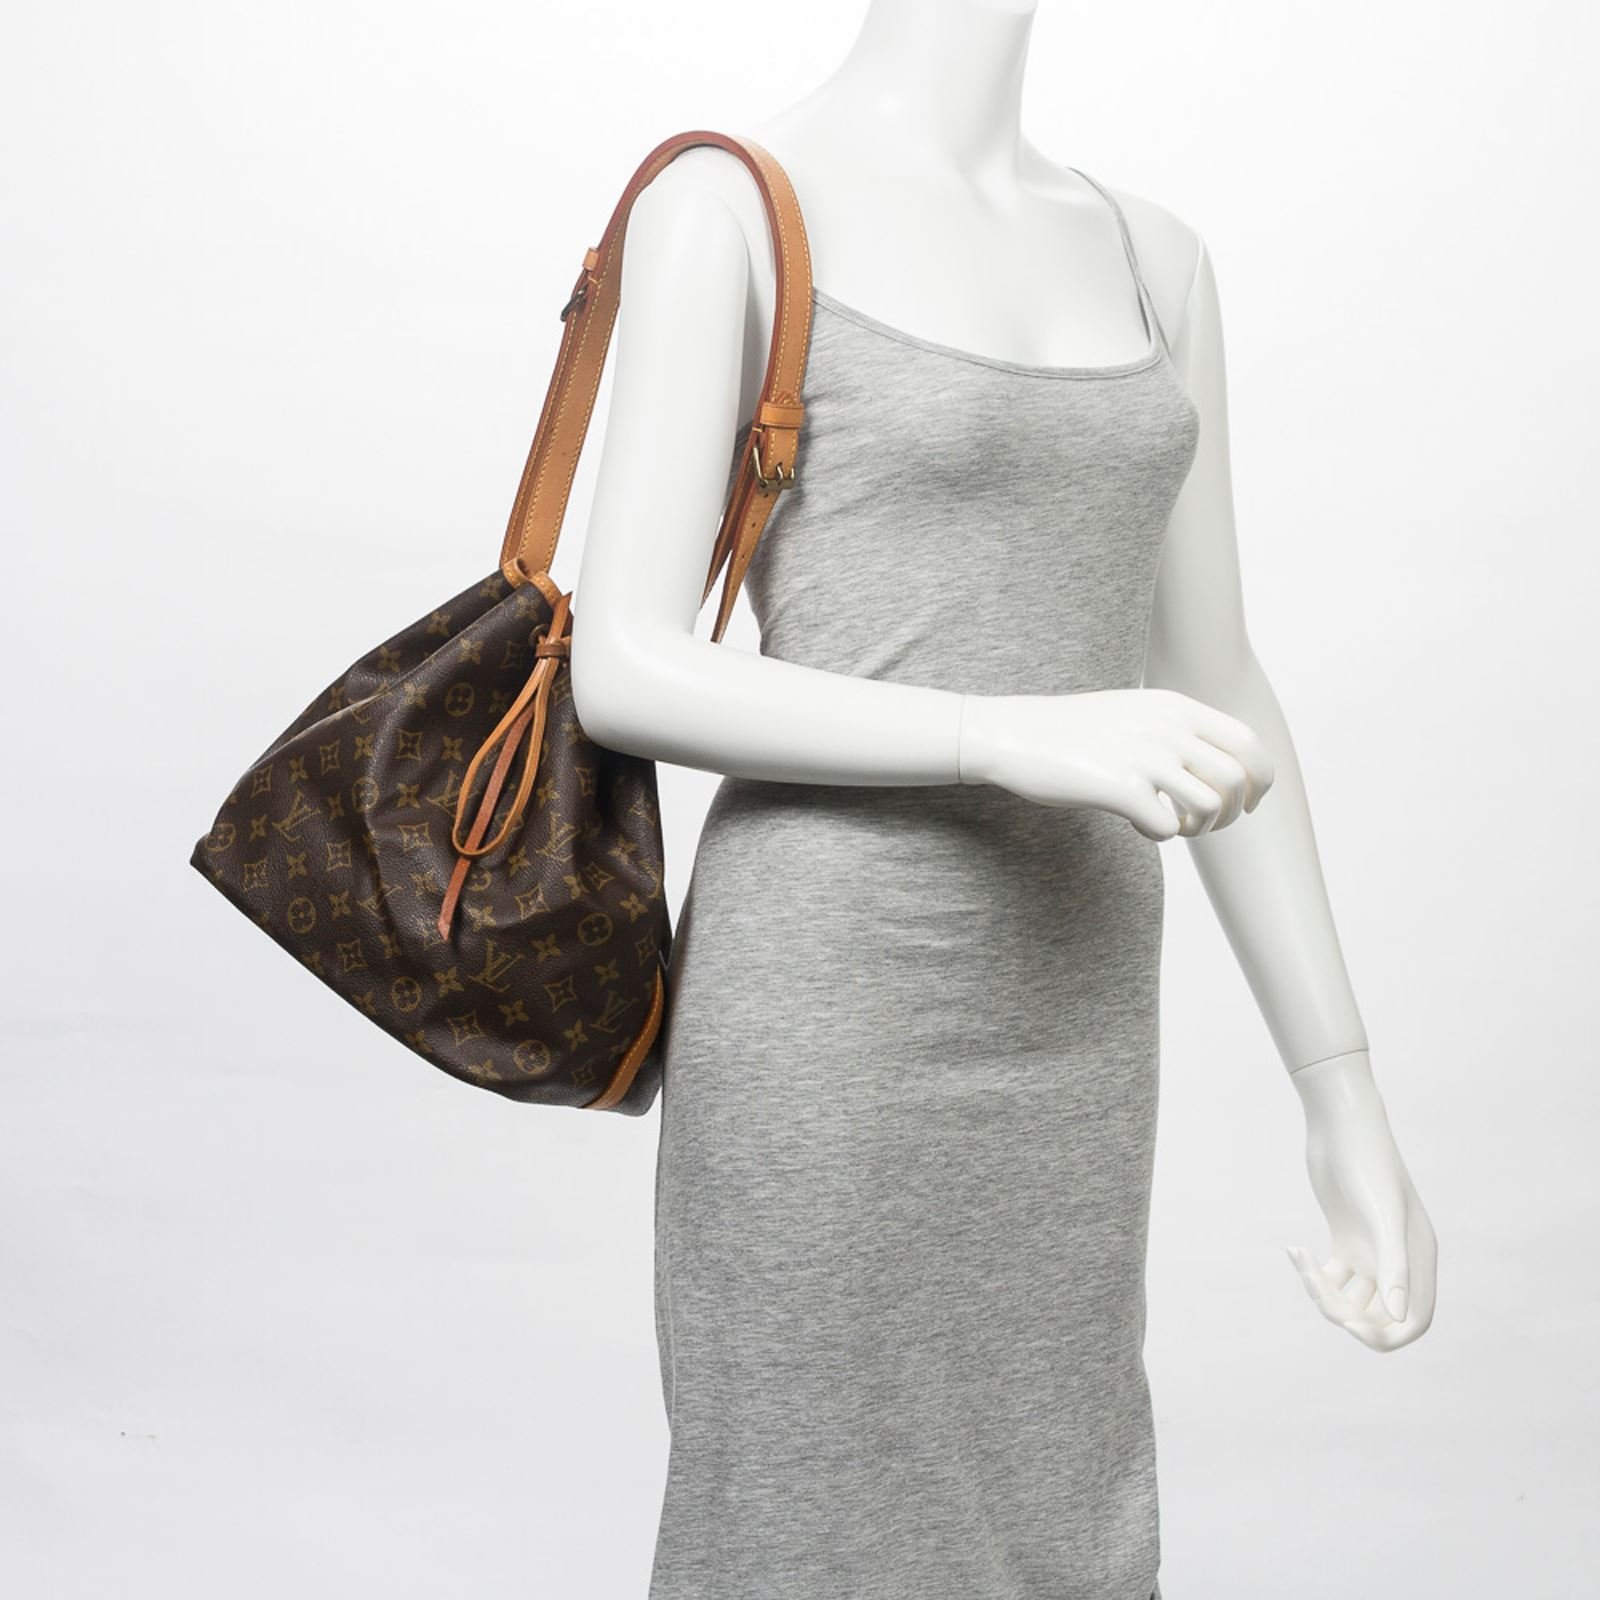 Damier - Designer Fashion Online: Clothing, Shoes, Handbags